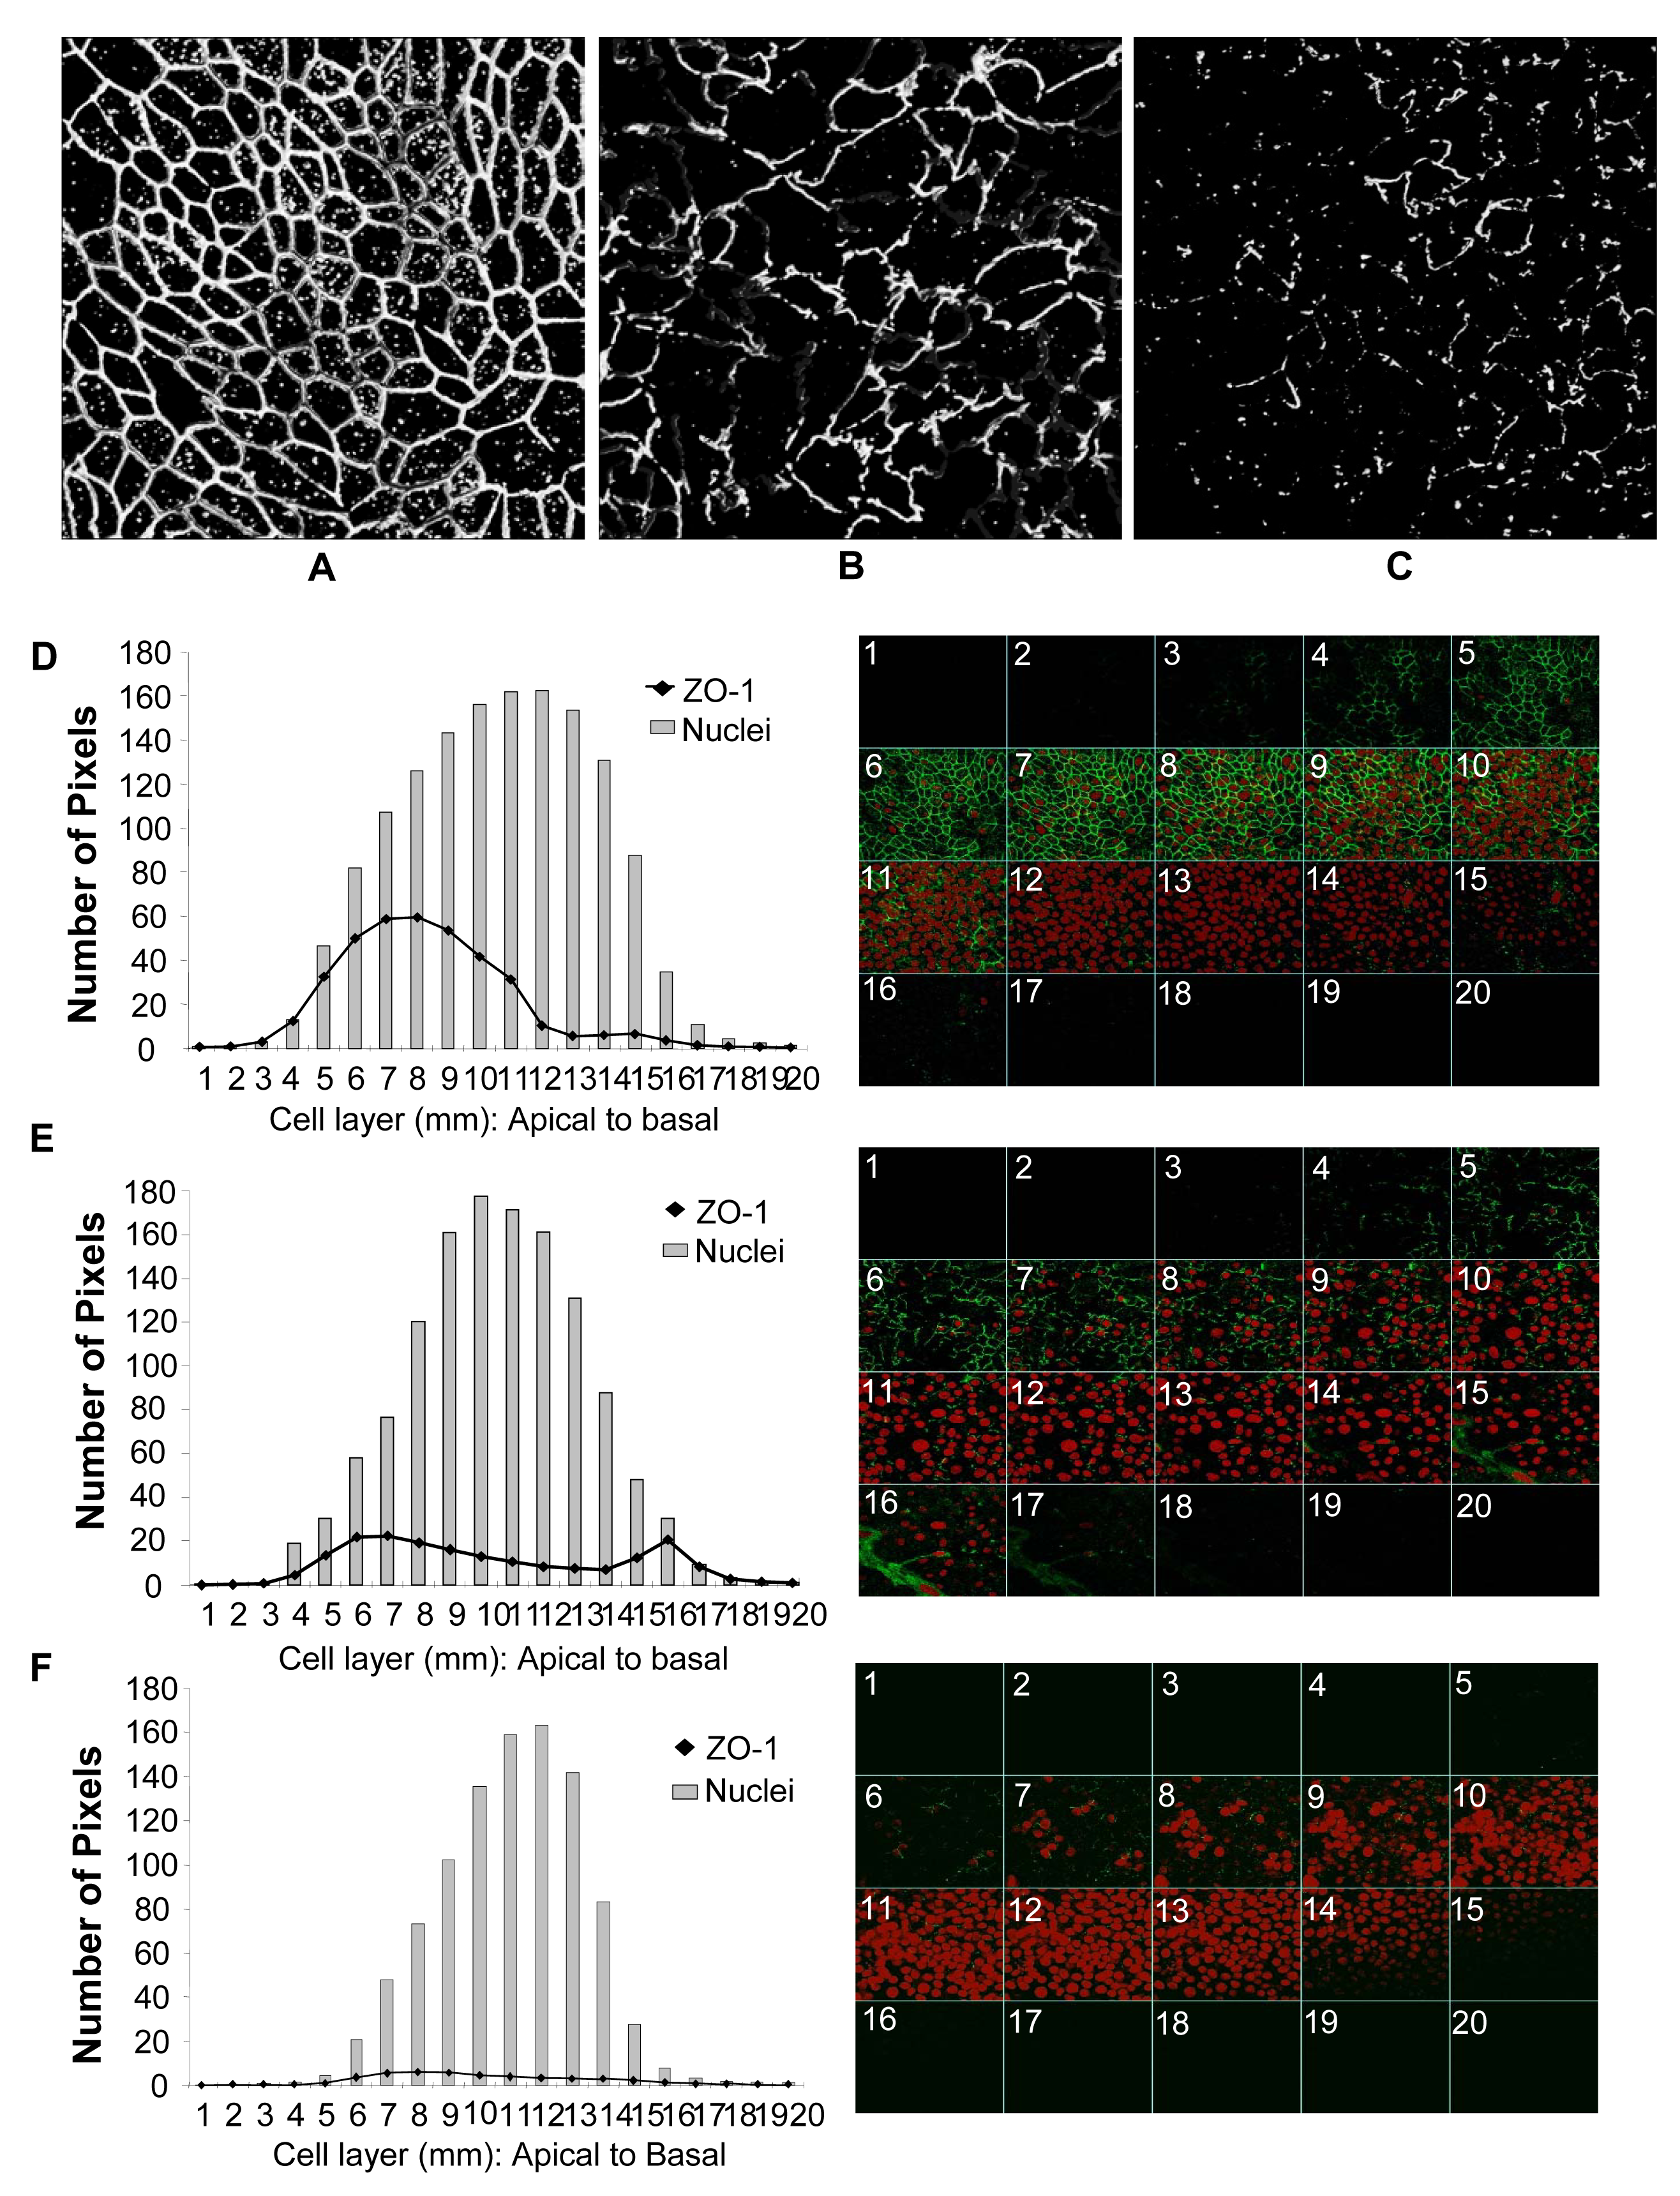 Genital EC monolayers were fixed after 4 or 24 hours post-HIV-1 exposure and stained for ZO-1 (green) and nucleus (red).